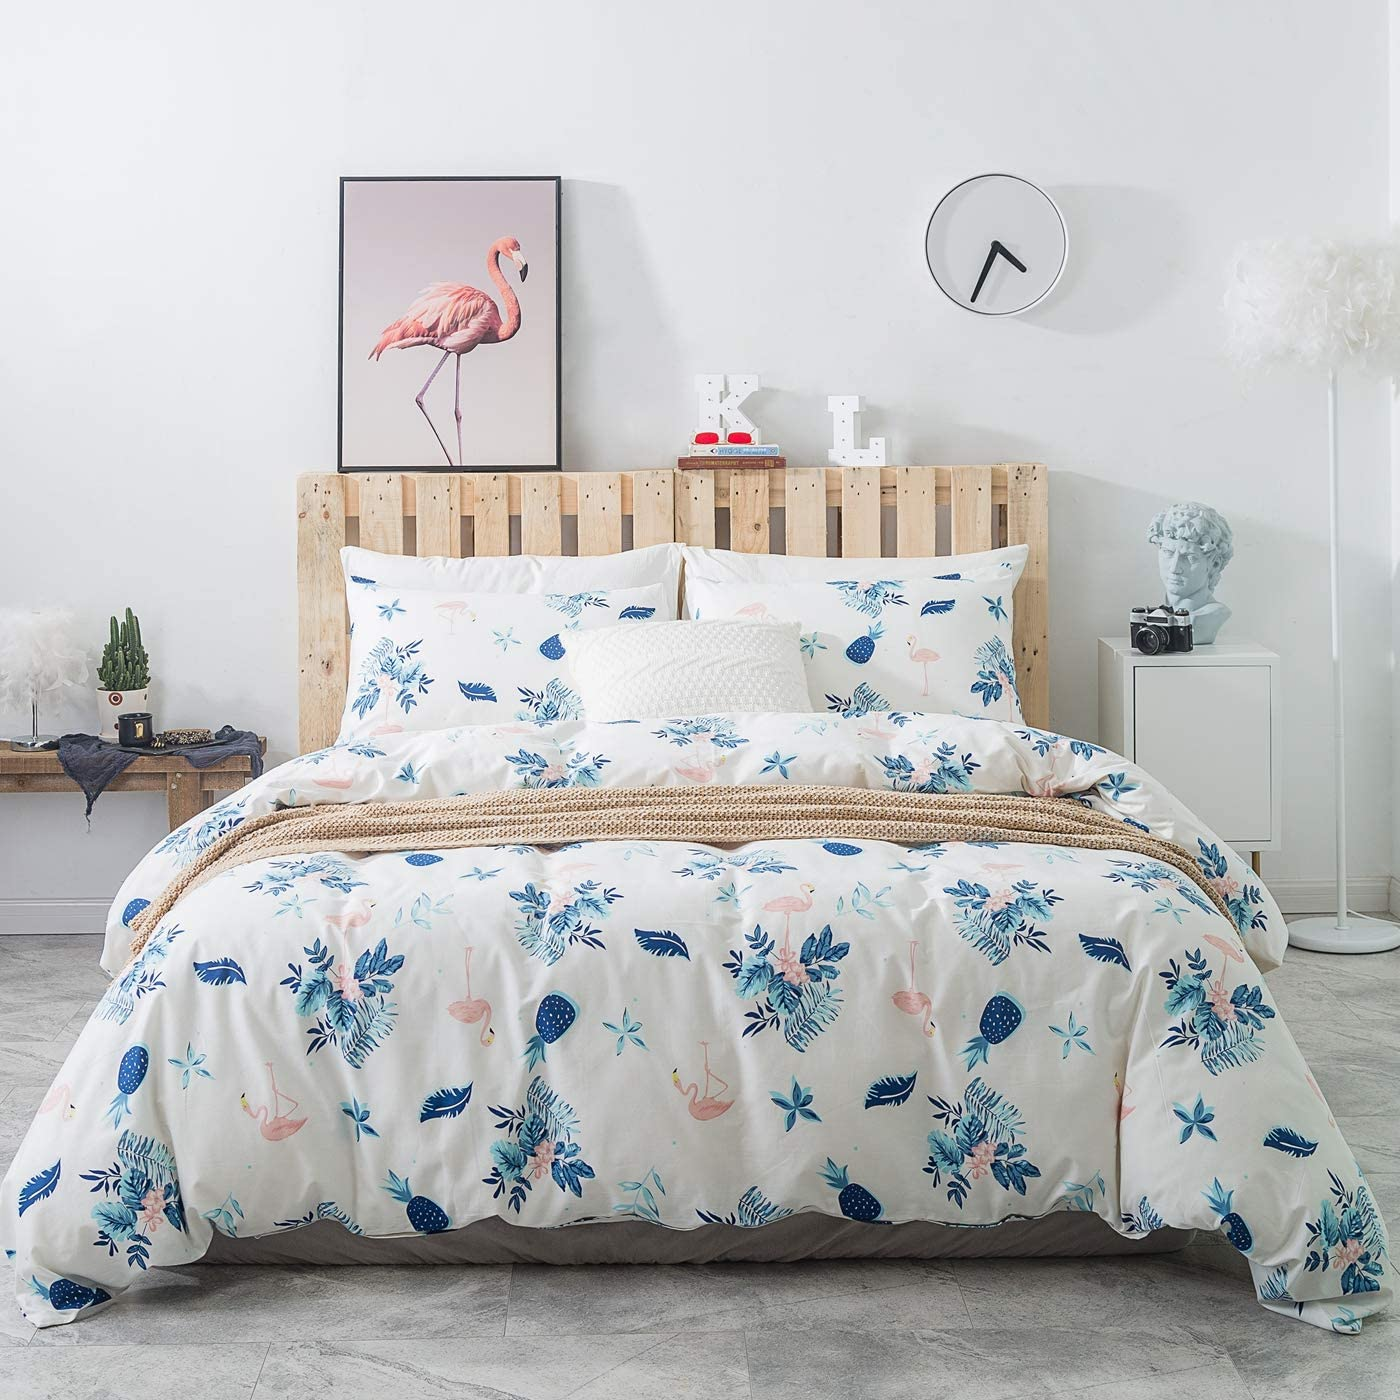 YuHeGuoJi 3 Pieces Pineapple Duvet Cover Set 100% Cotton White King Size Blue Floral Bedding Set 1 Pink Flamingo Print Duvet Cover with Zipper Ties 2 Pillowcases Hotel Quality Soft Breathable Durable